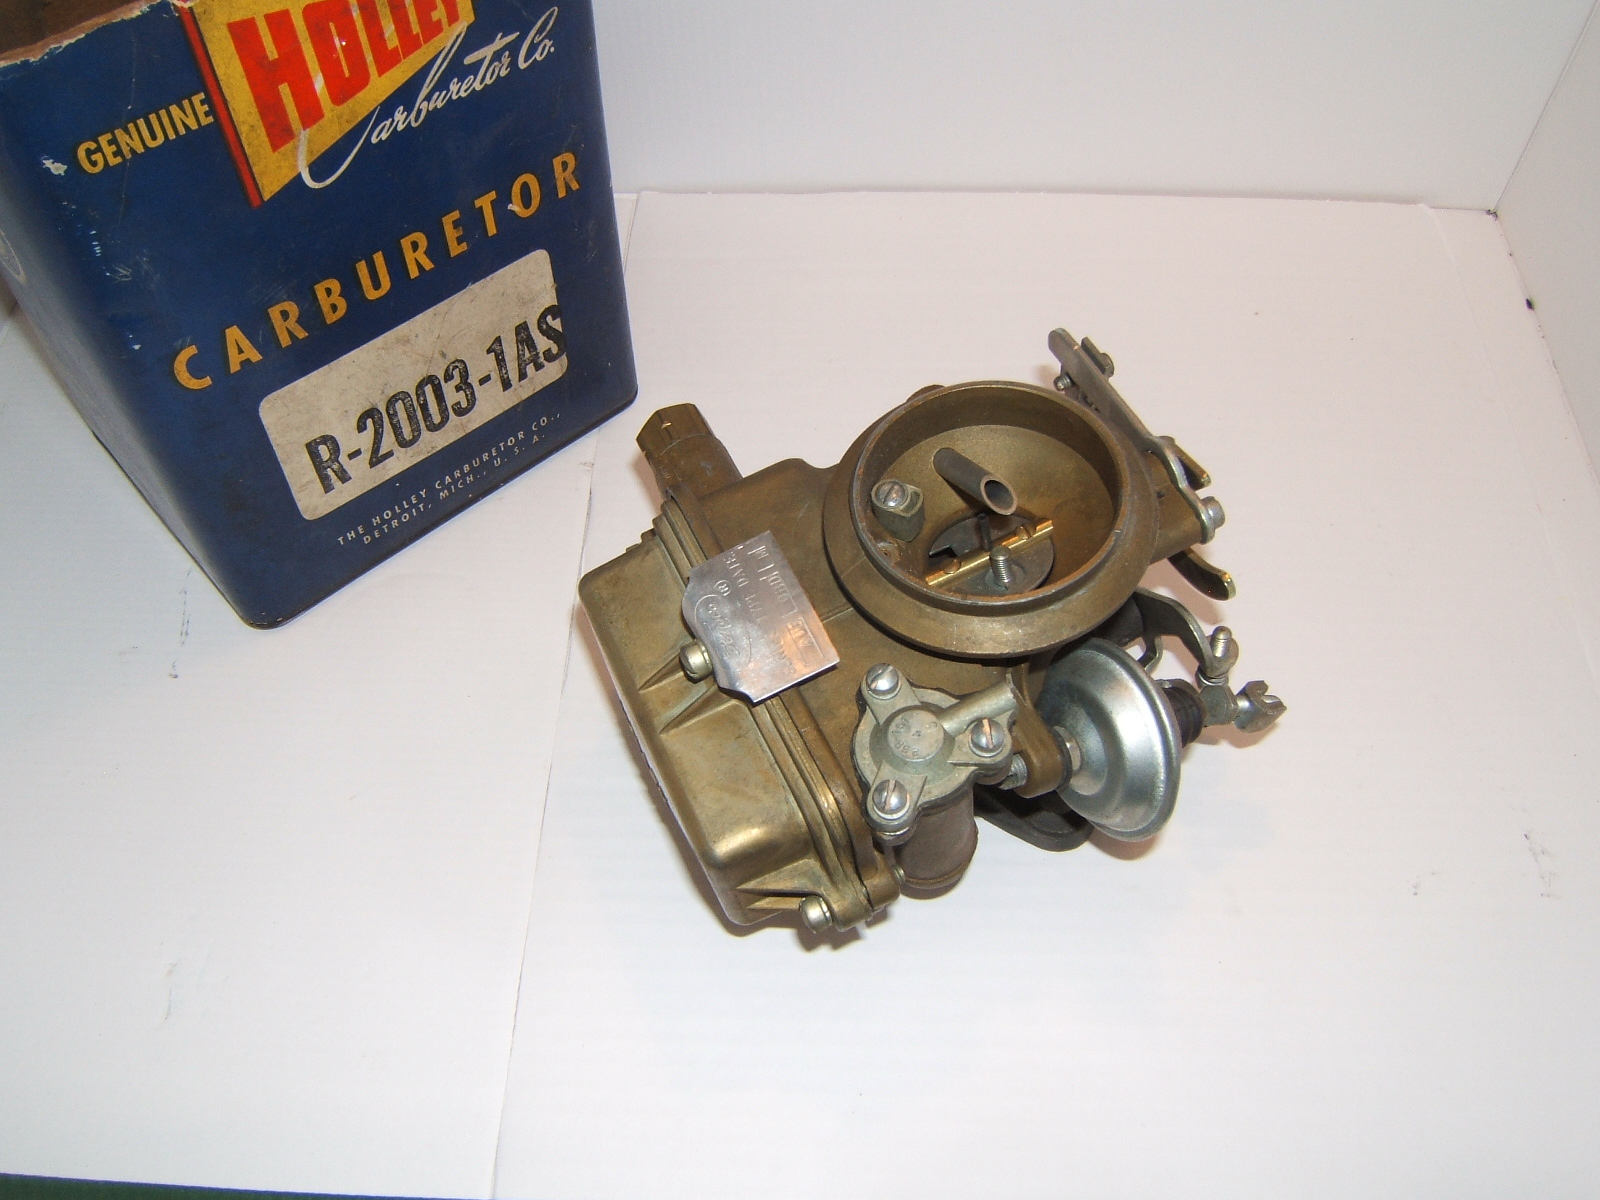 1960,1961 falcon comet carburetor holley nos r-2003-1a (a r2003-1as)